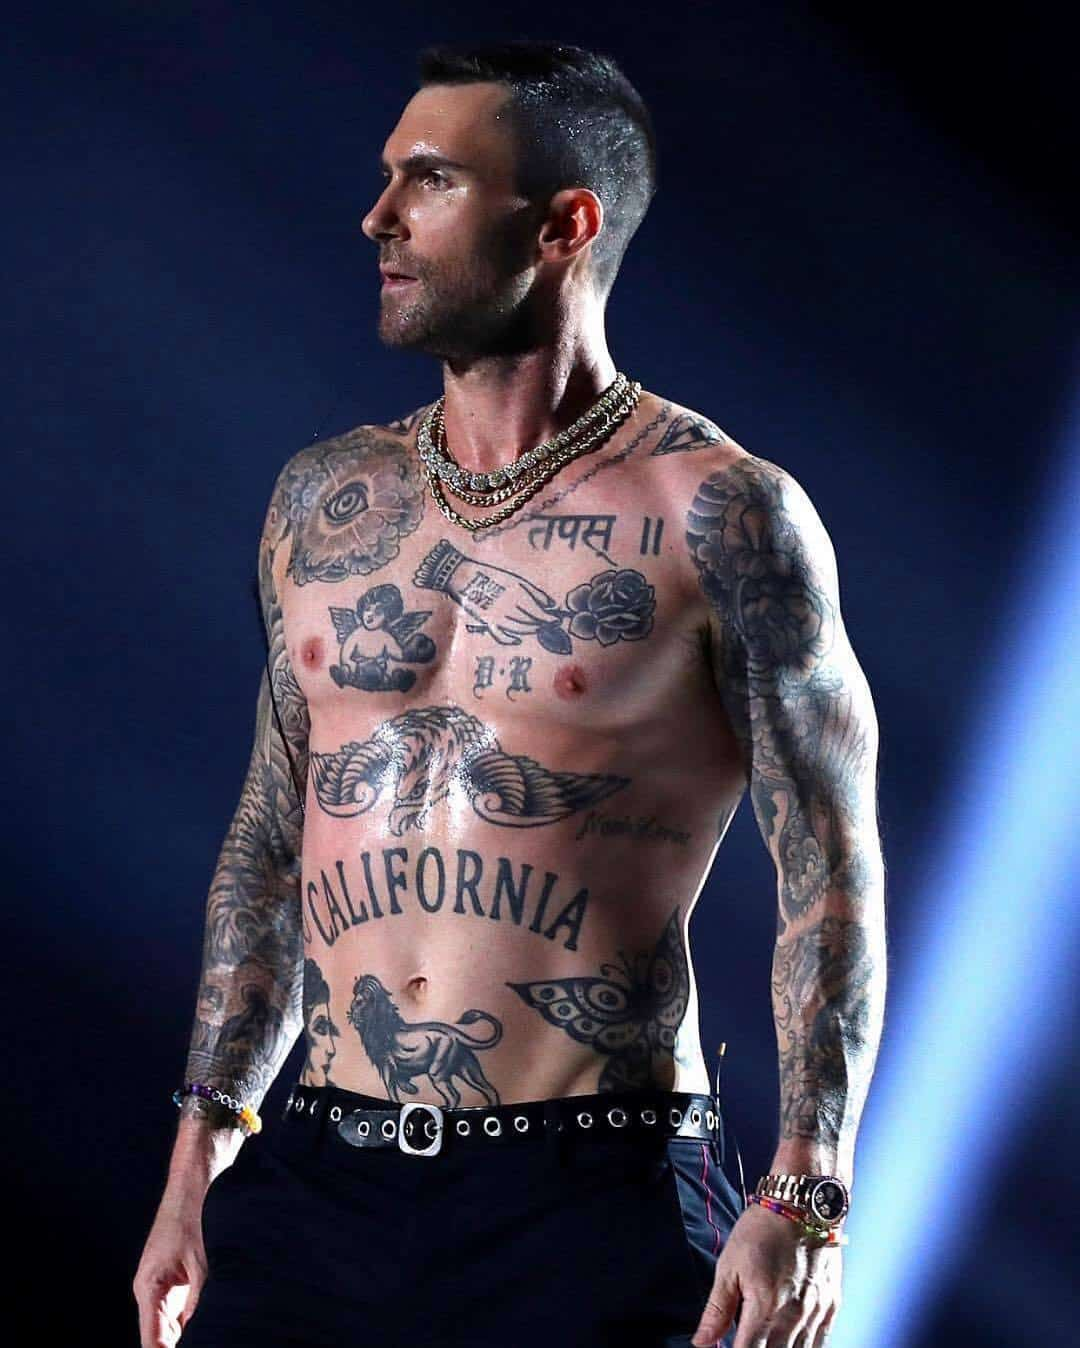 adam levine true love with a rose tattoo